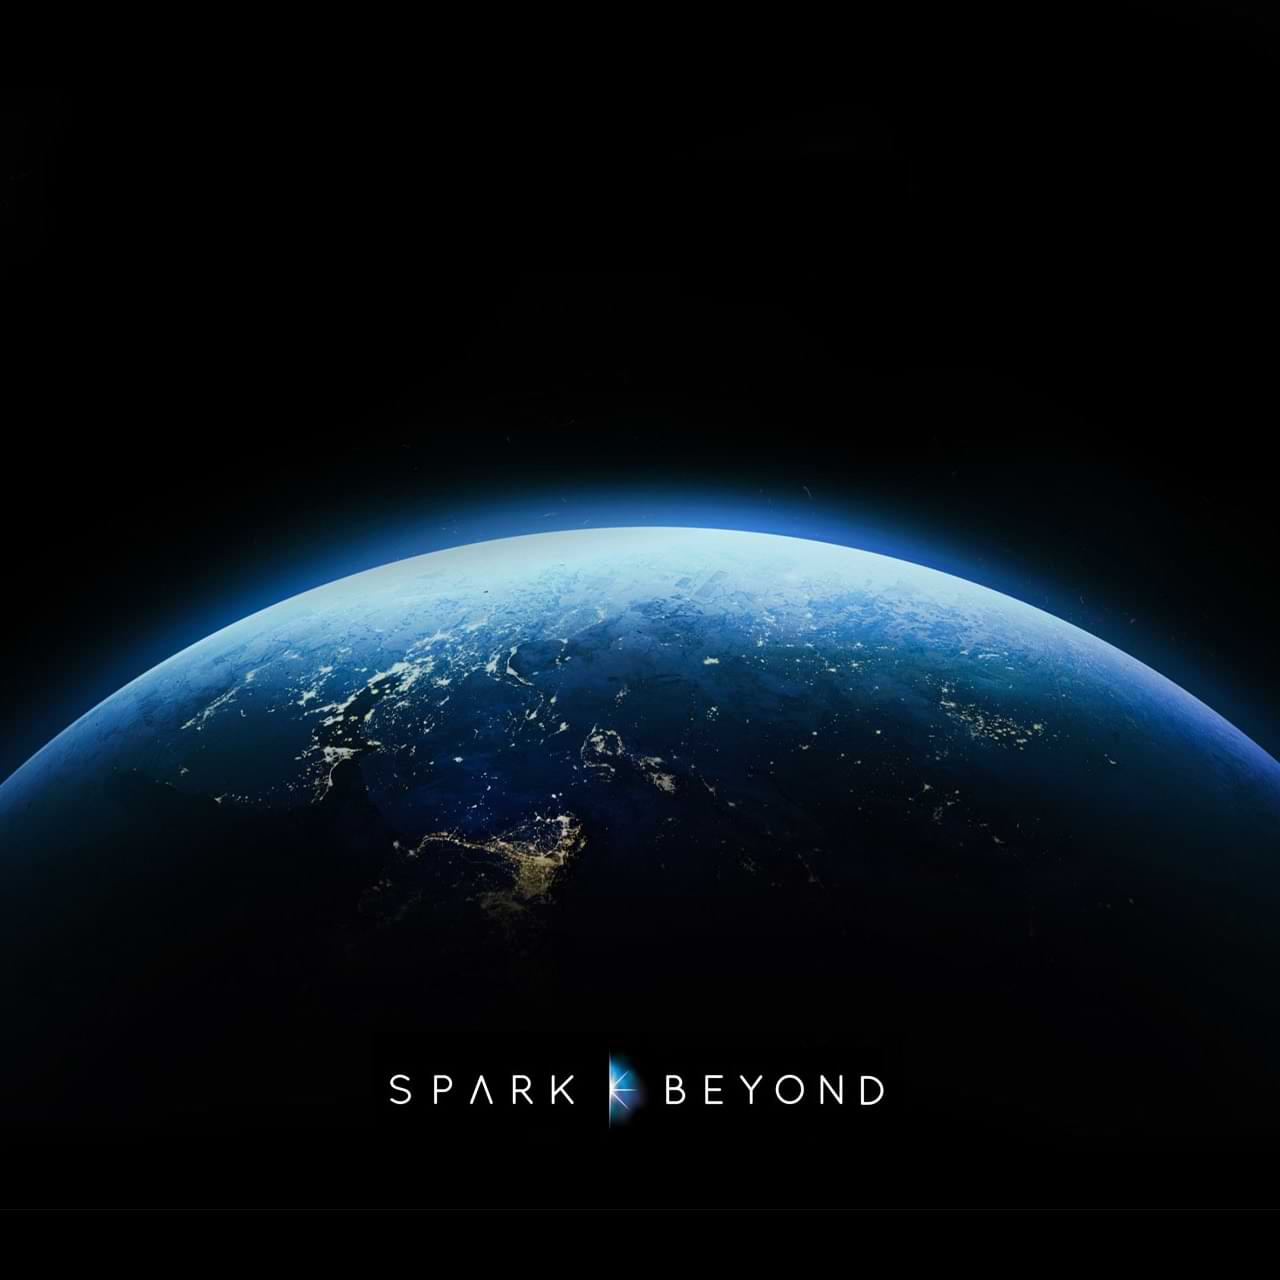 sparkbeyond-project-featured